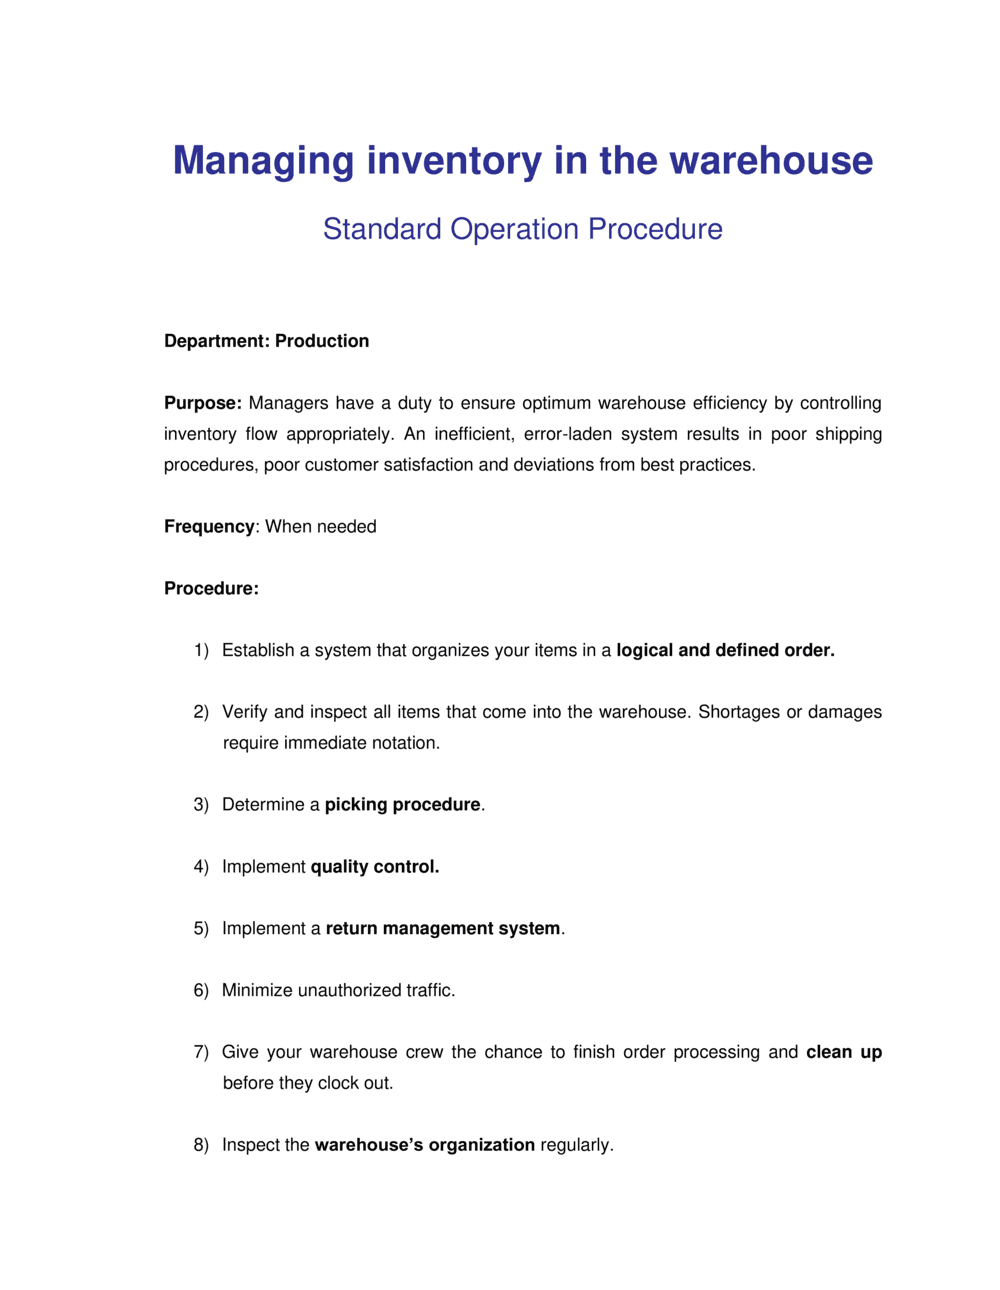 Business-in-a-Box's How to Manage Inventory in the Warehouse Template